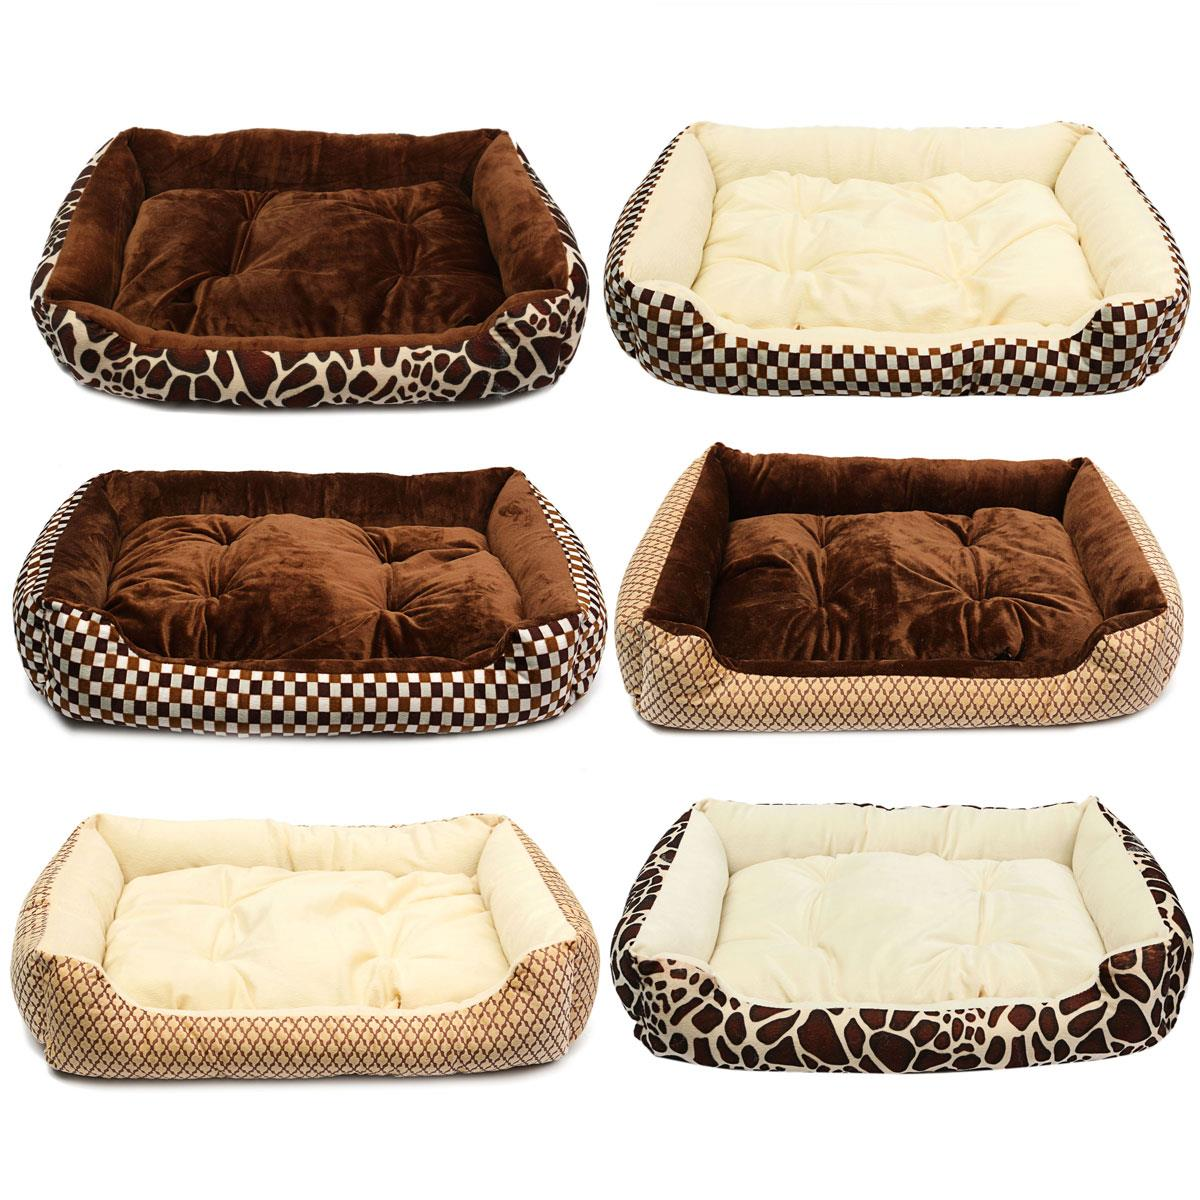 bed cheapdogbeds couch prices big by foam beds baxter overstock orthopedic pet tan pin hidden other extra on the dog shopping best pinterest valley large